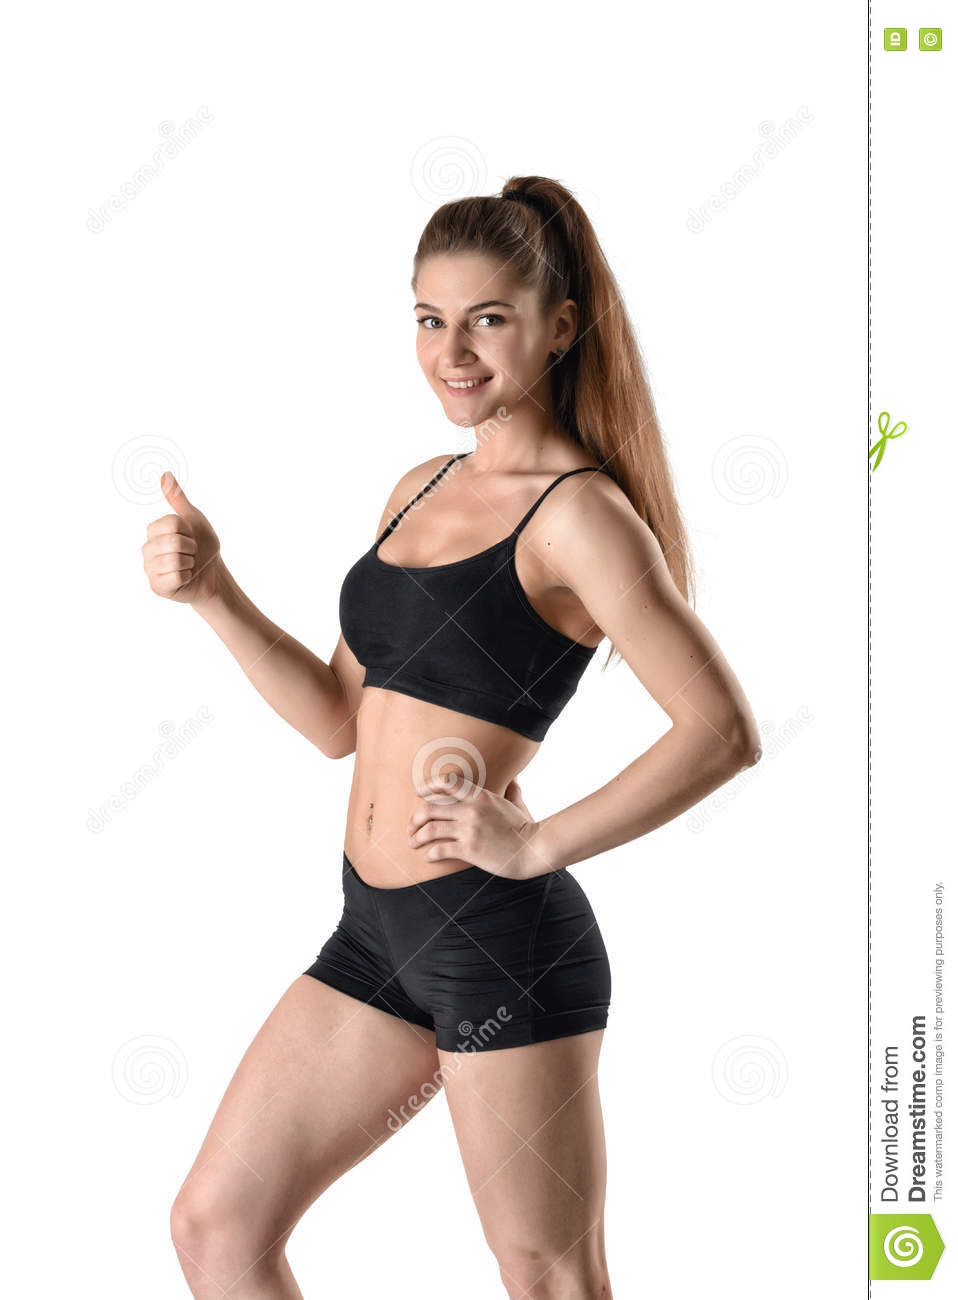 cf0d7f56d3ba2 Cutout young fitness girl in shorts and a tank top standing sideways and  showing thumbs up looking directly at the camera.